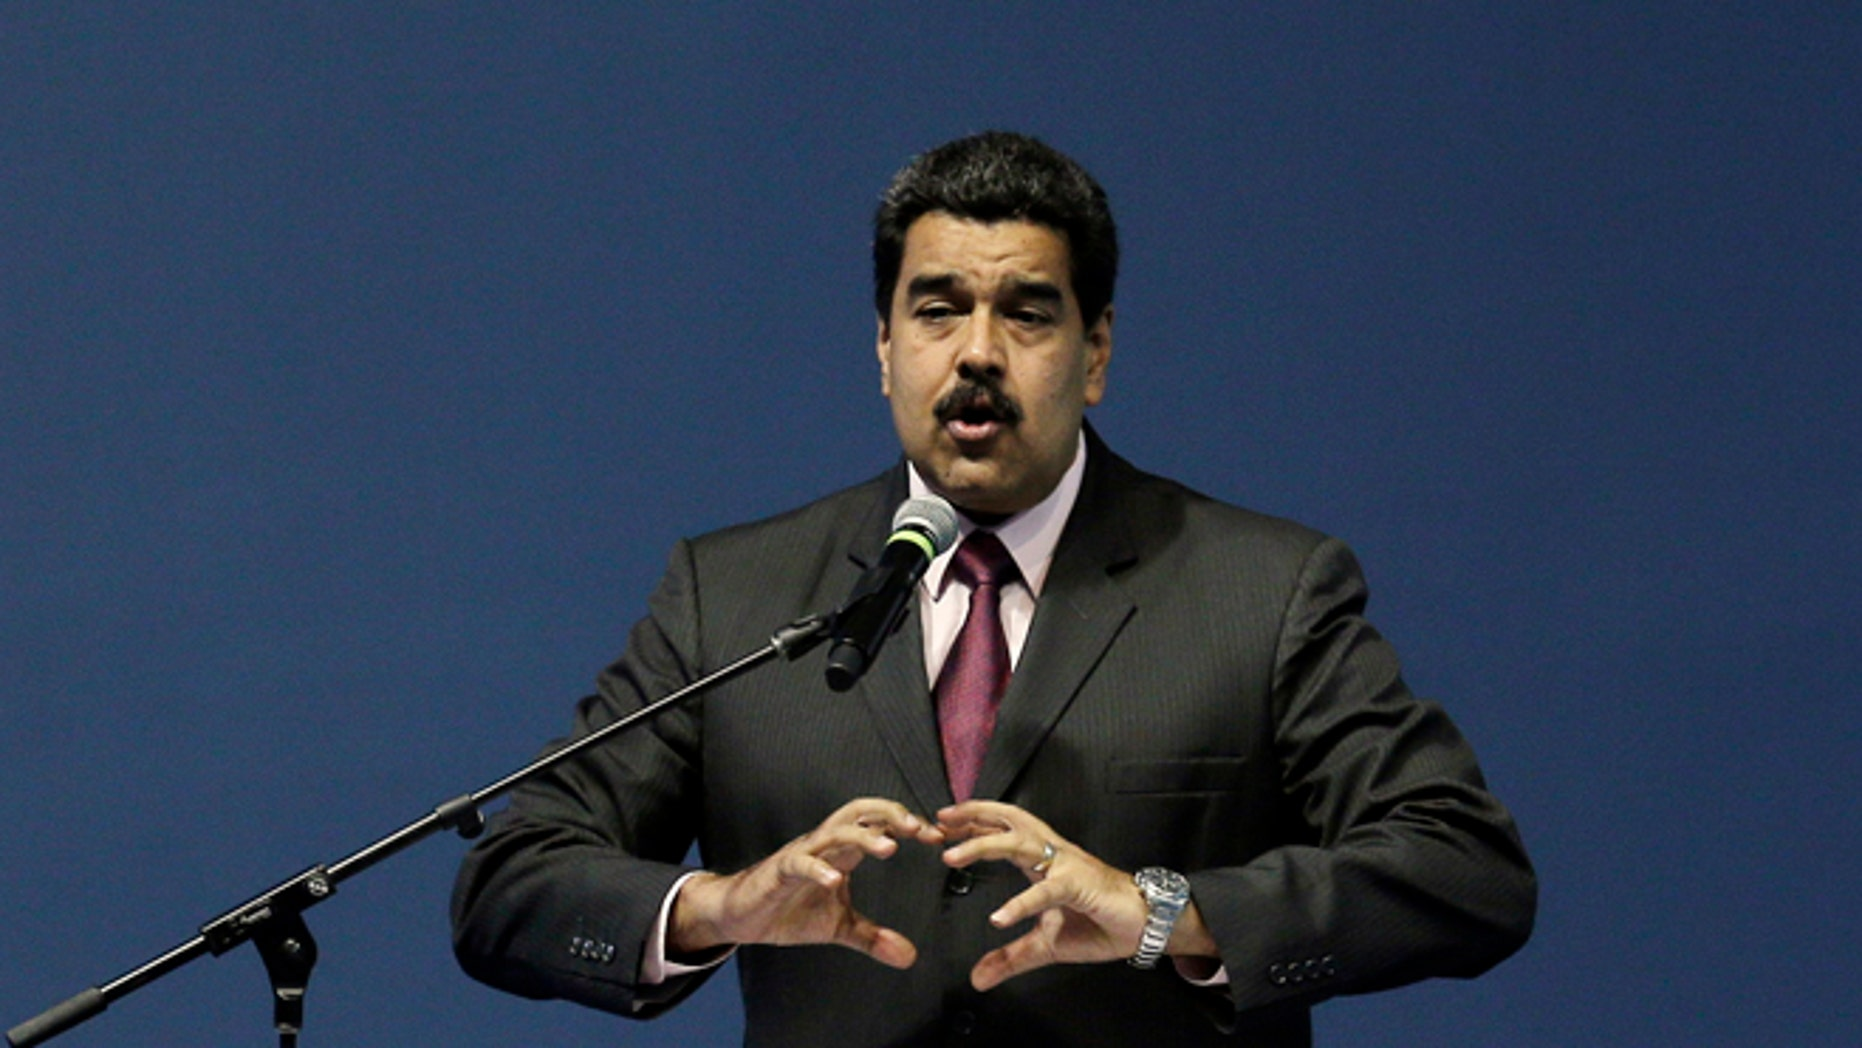 Venezuela's President Maduro during the opening of the third United Nations Habitat Conference, in Quito, Ecuador, Oct. 17, 2016.